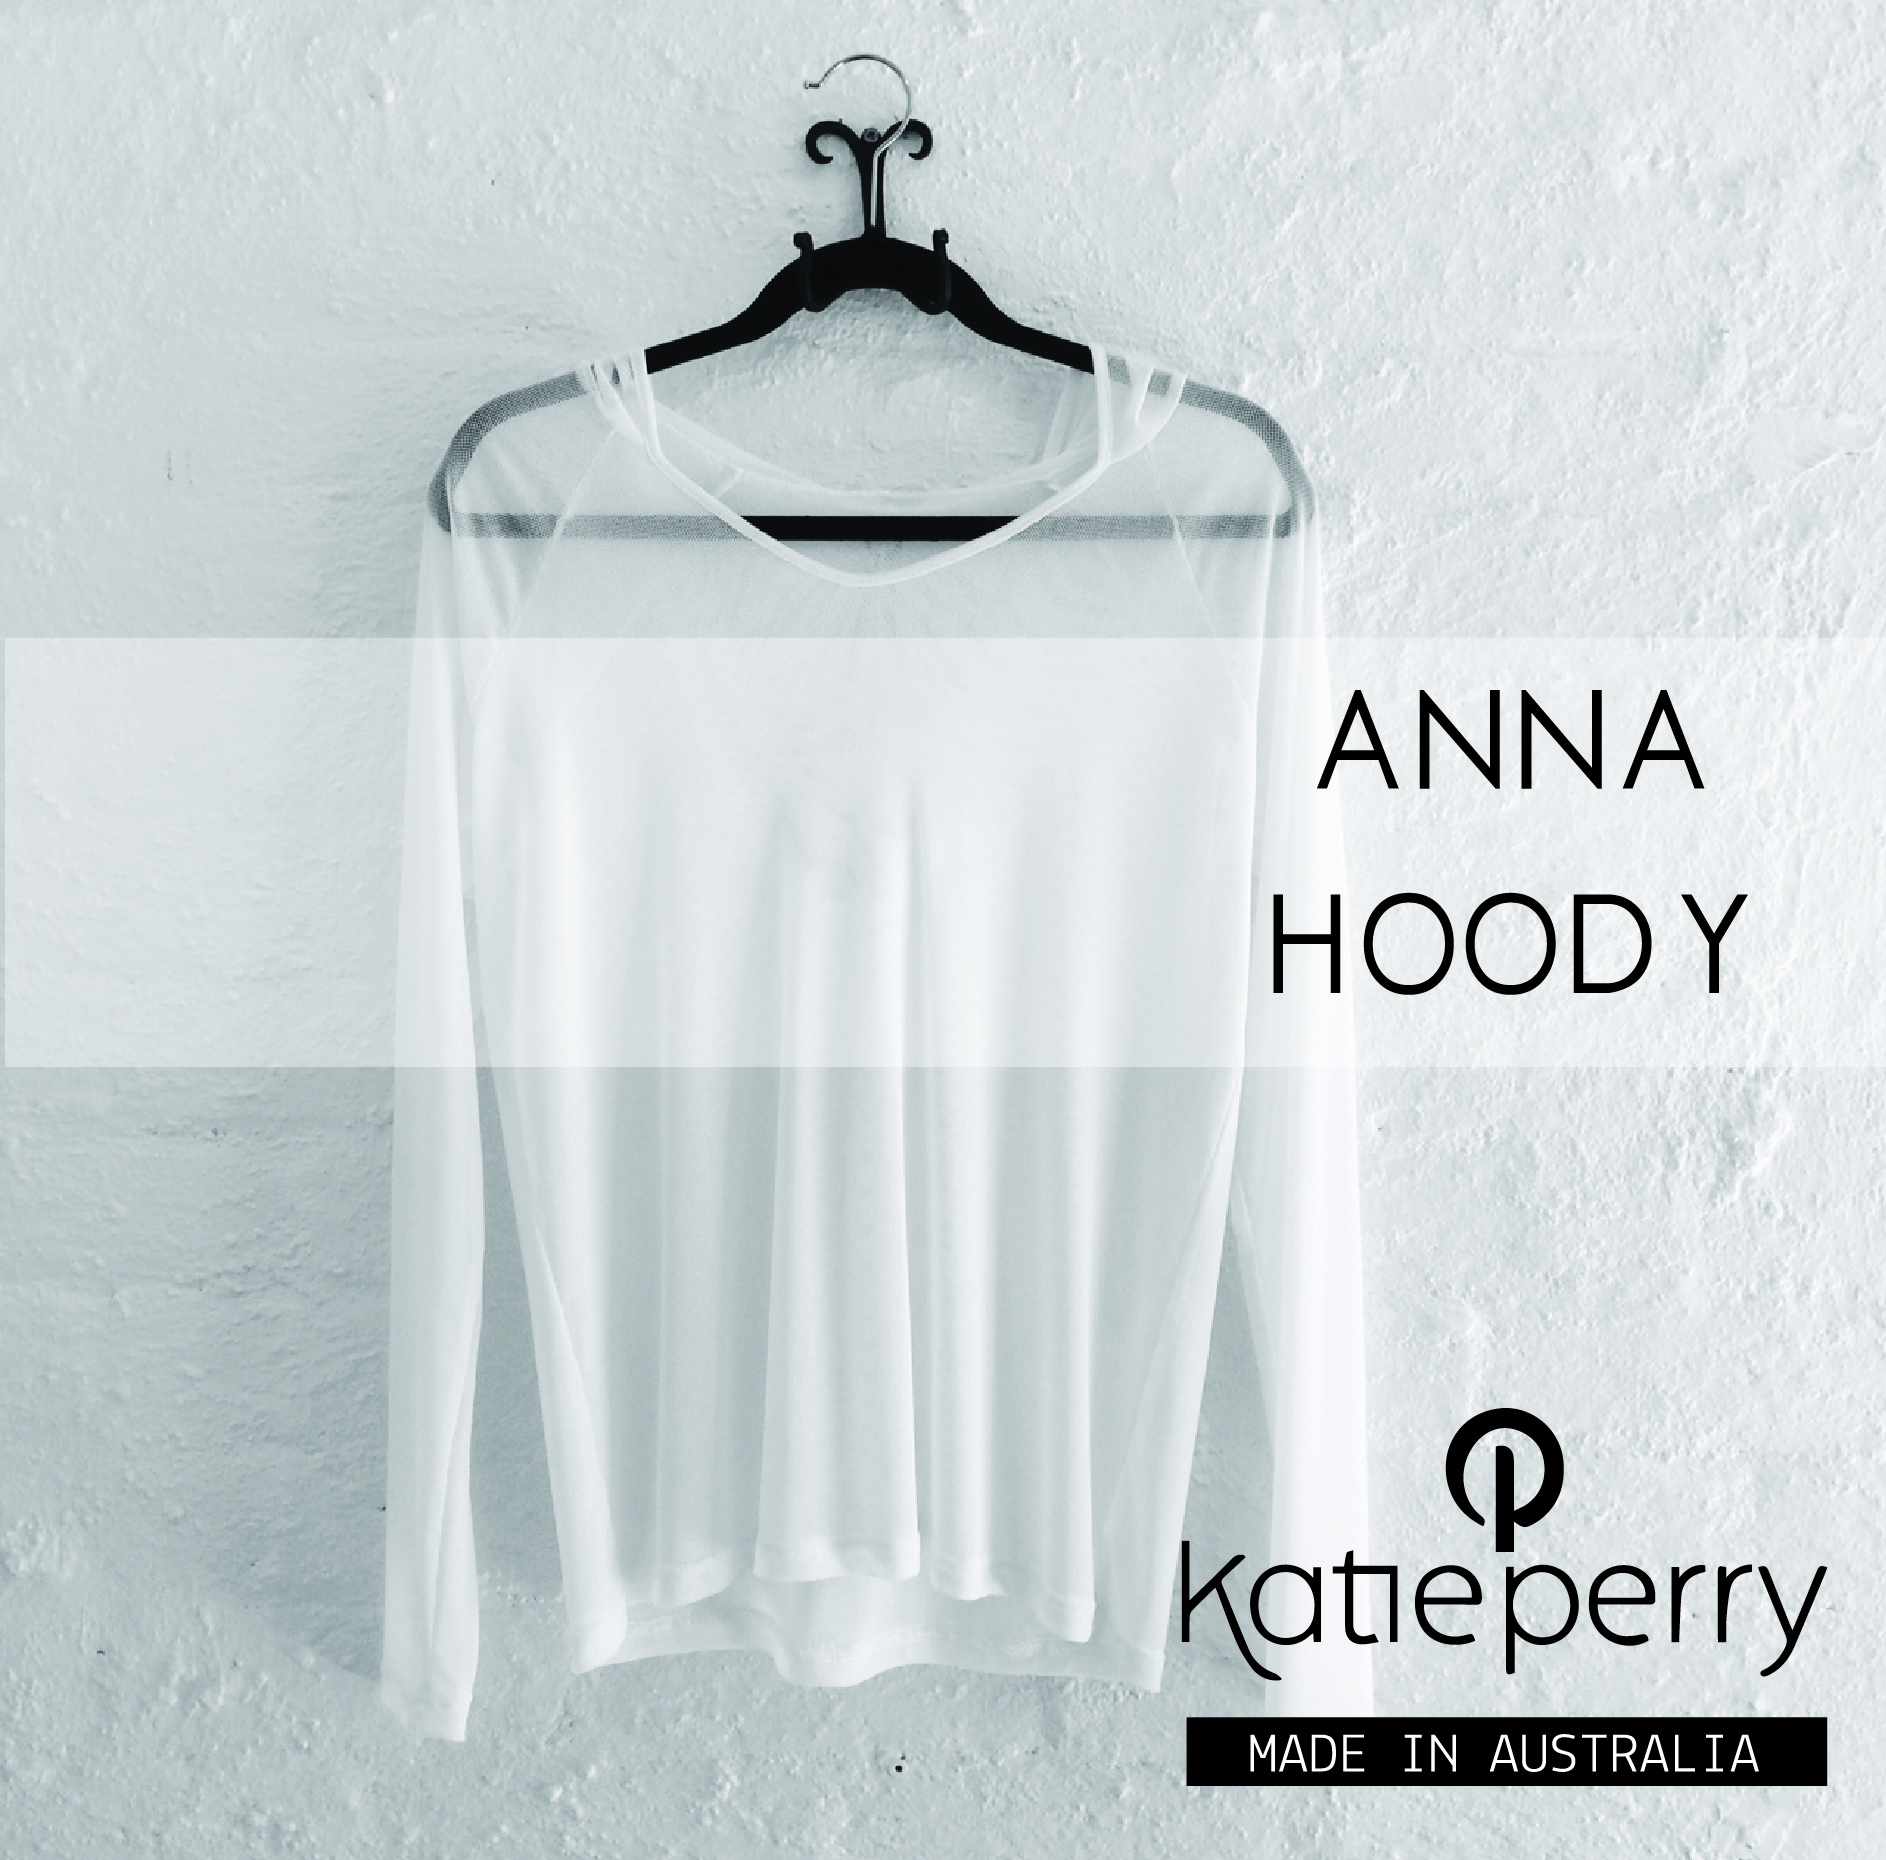 Anna Hoody from Katie Perry